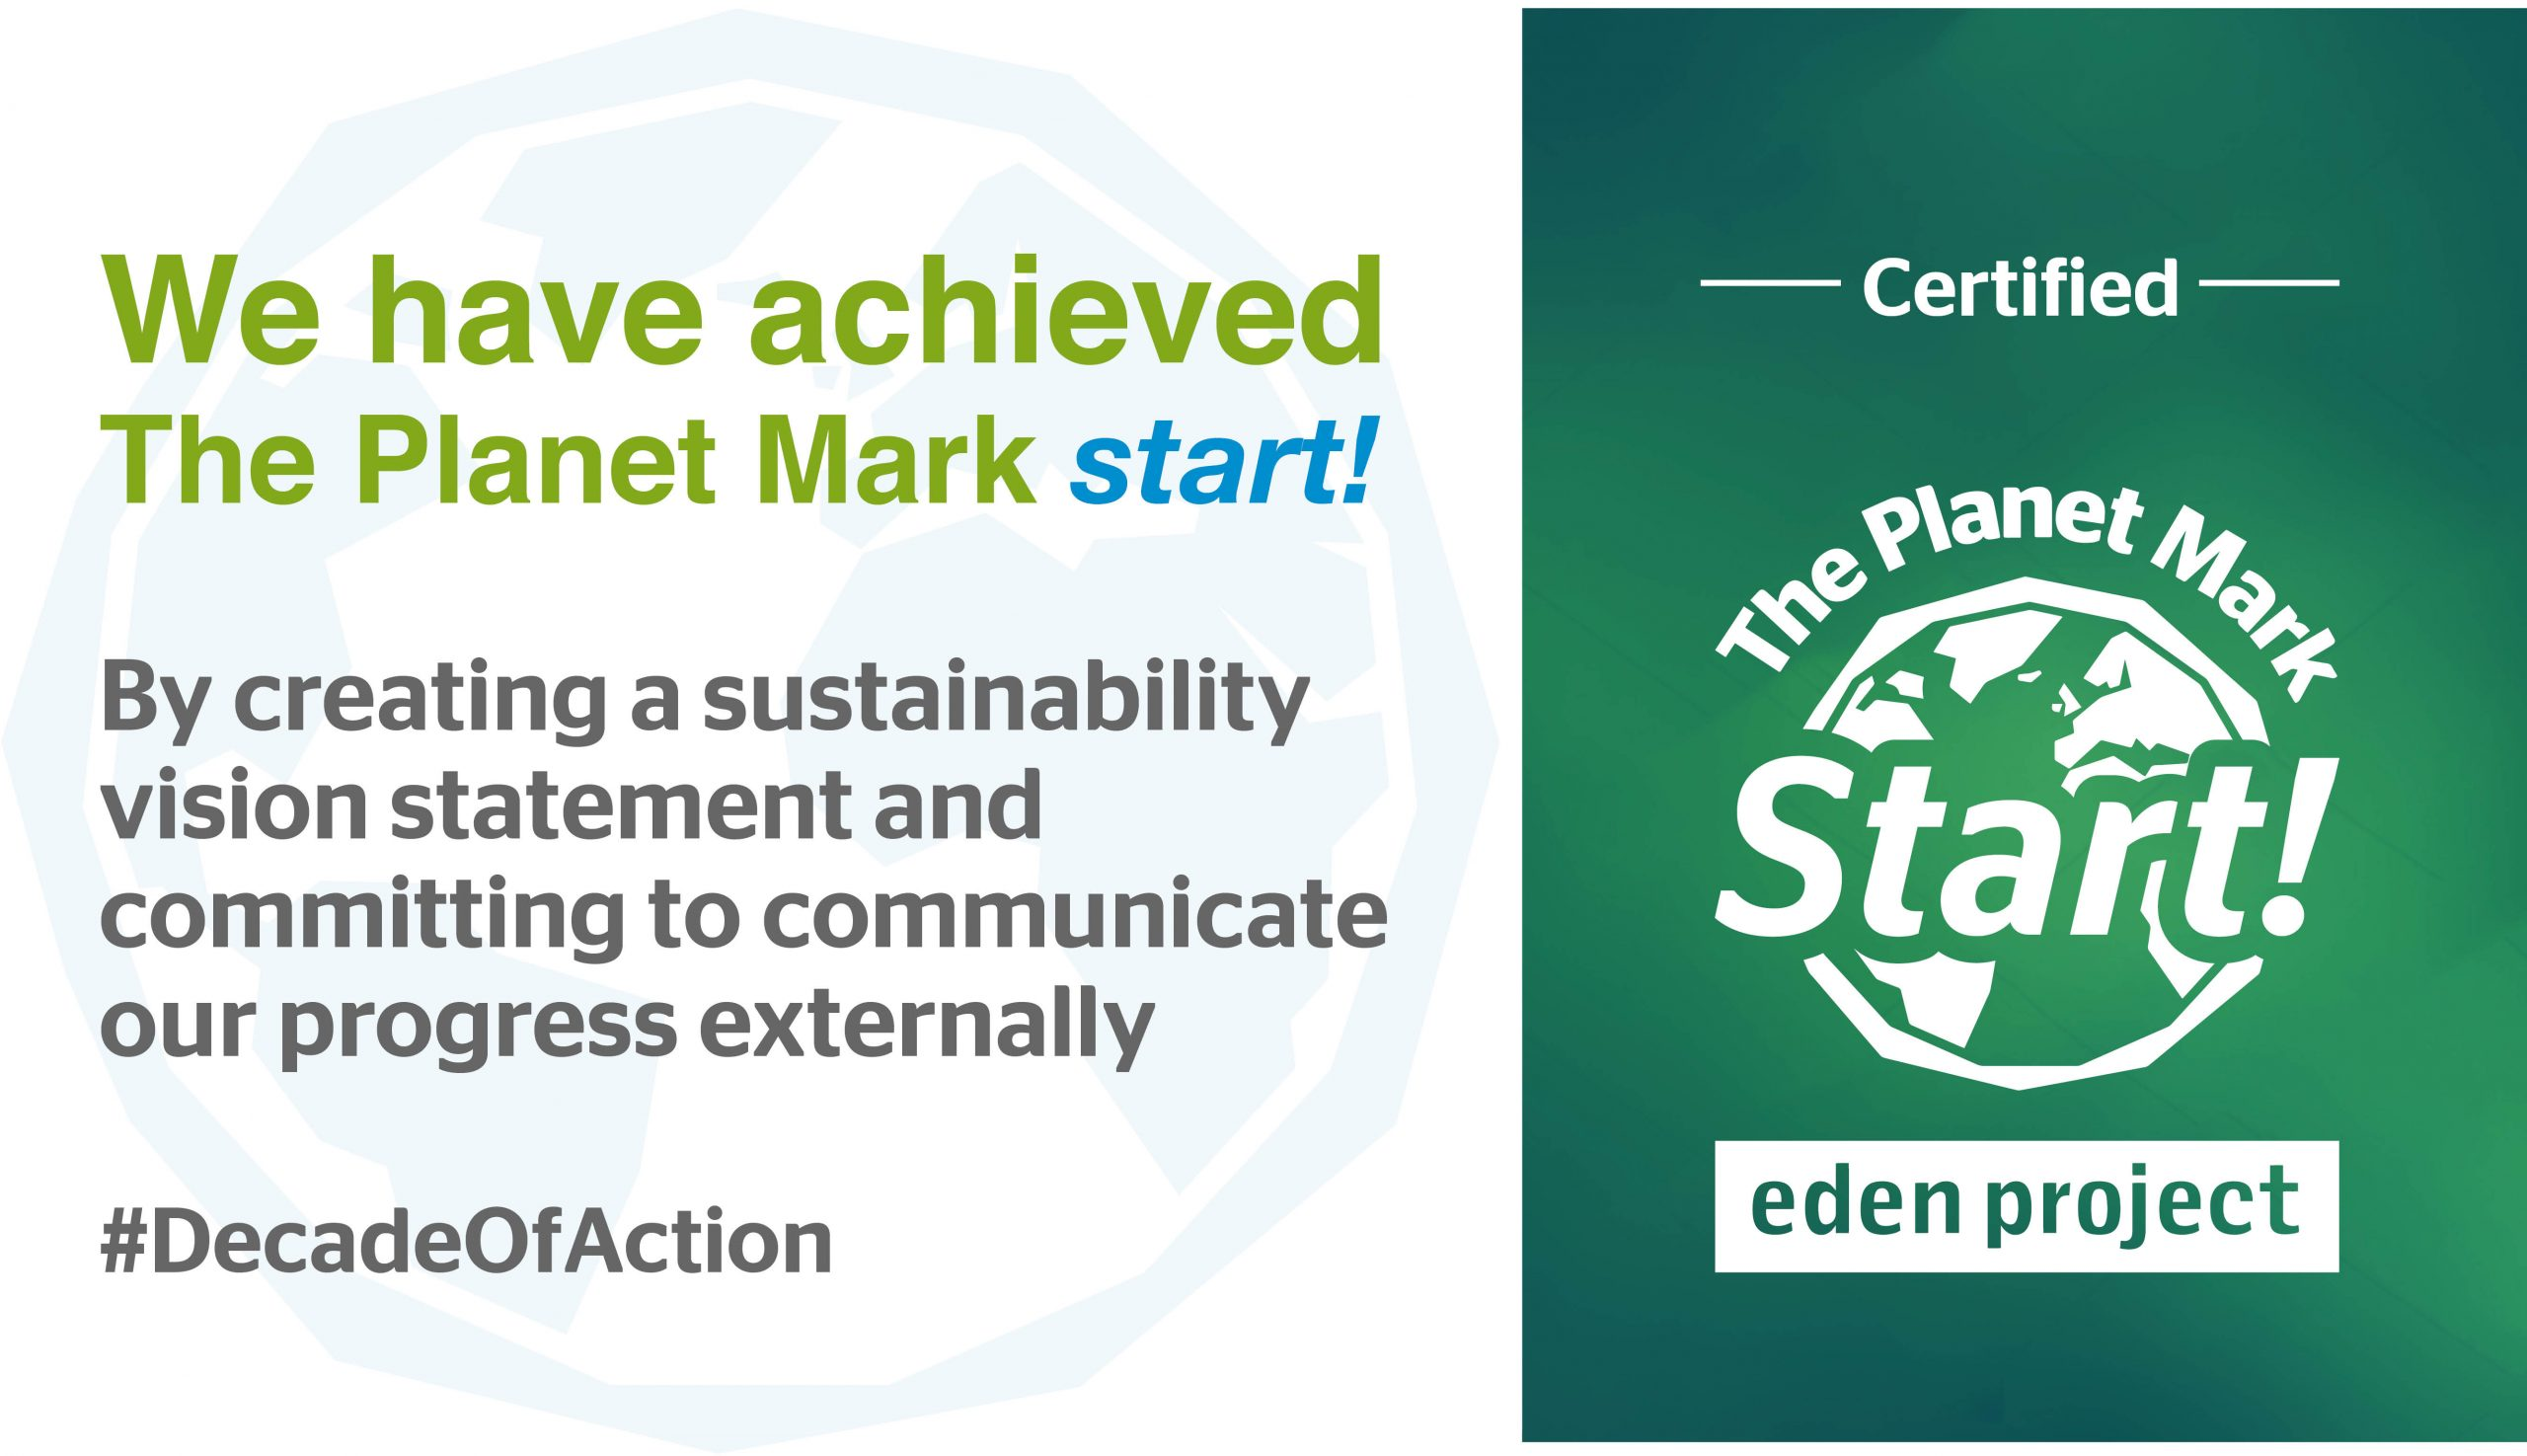 The Planet Mark Start certificate, by creating a sustainability vision statemeent and committing to communicate our progress externally